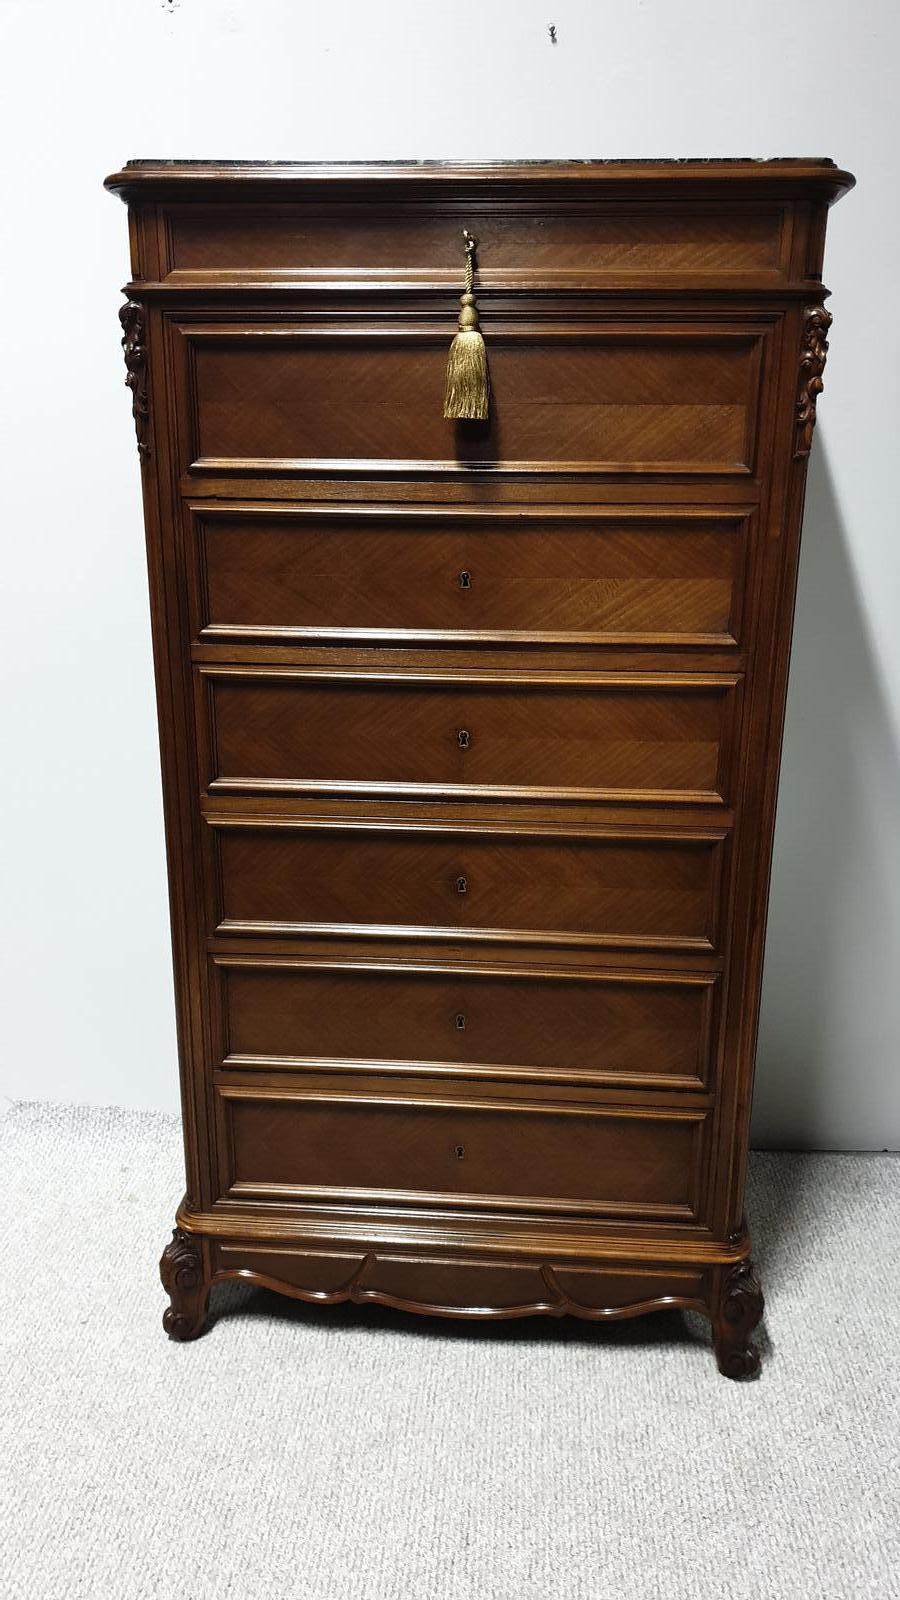 Top Quality French Chest of Drawers (1 of 1)